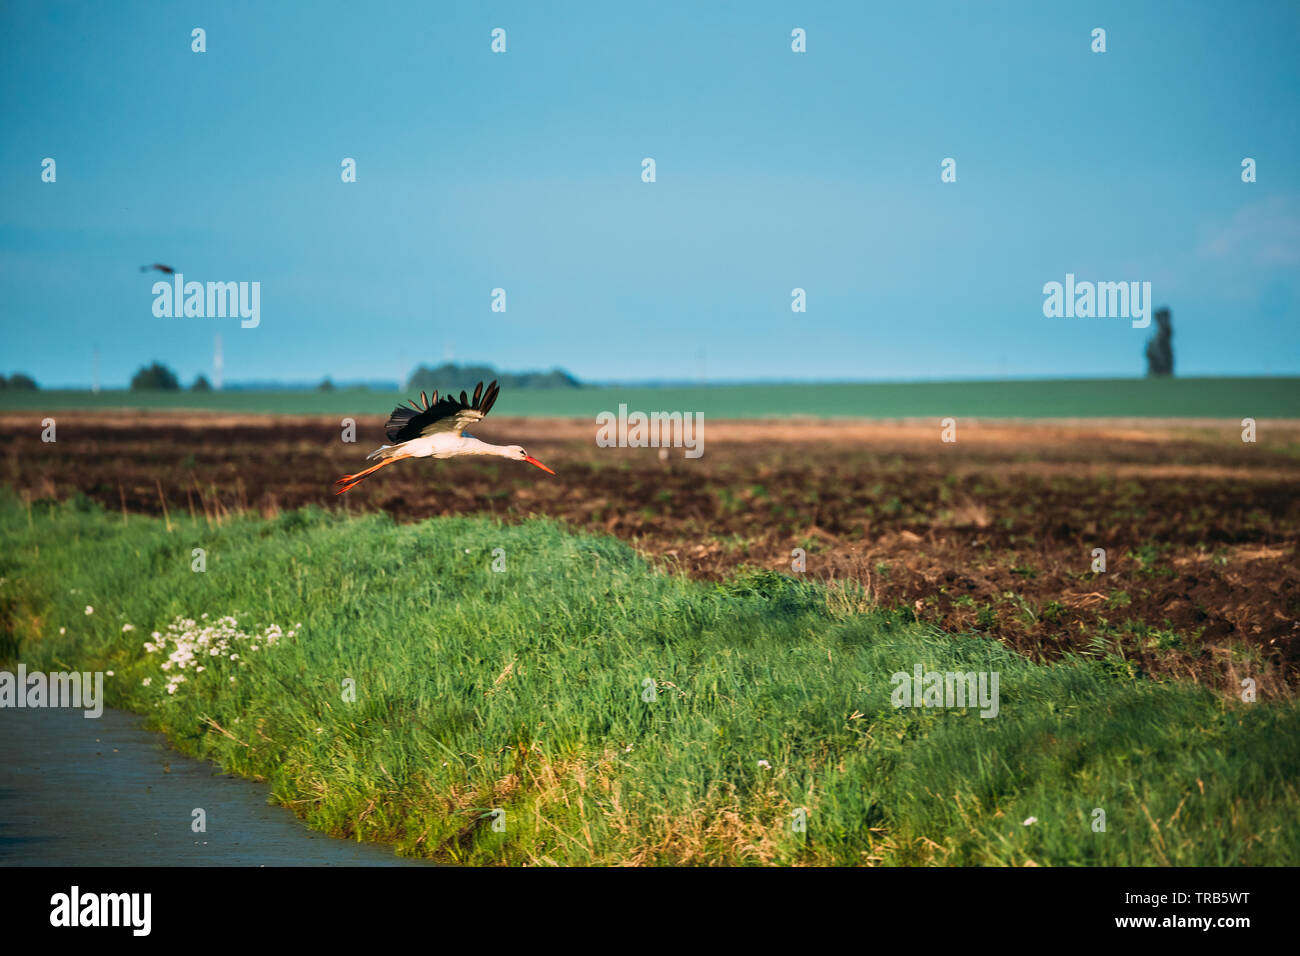 European White Stork Ciconia Ciconia Flying Above Spring Field in Belarus. Stock Photo